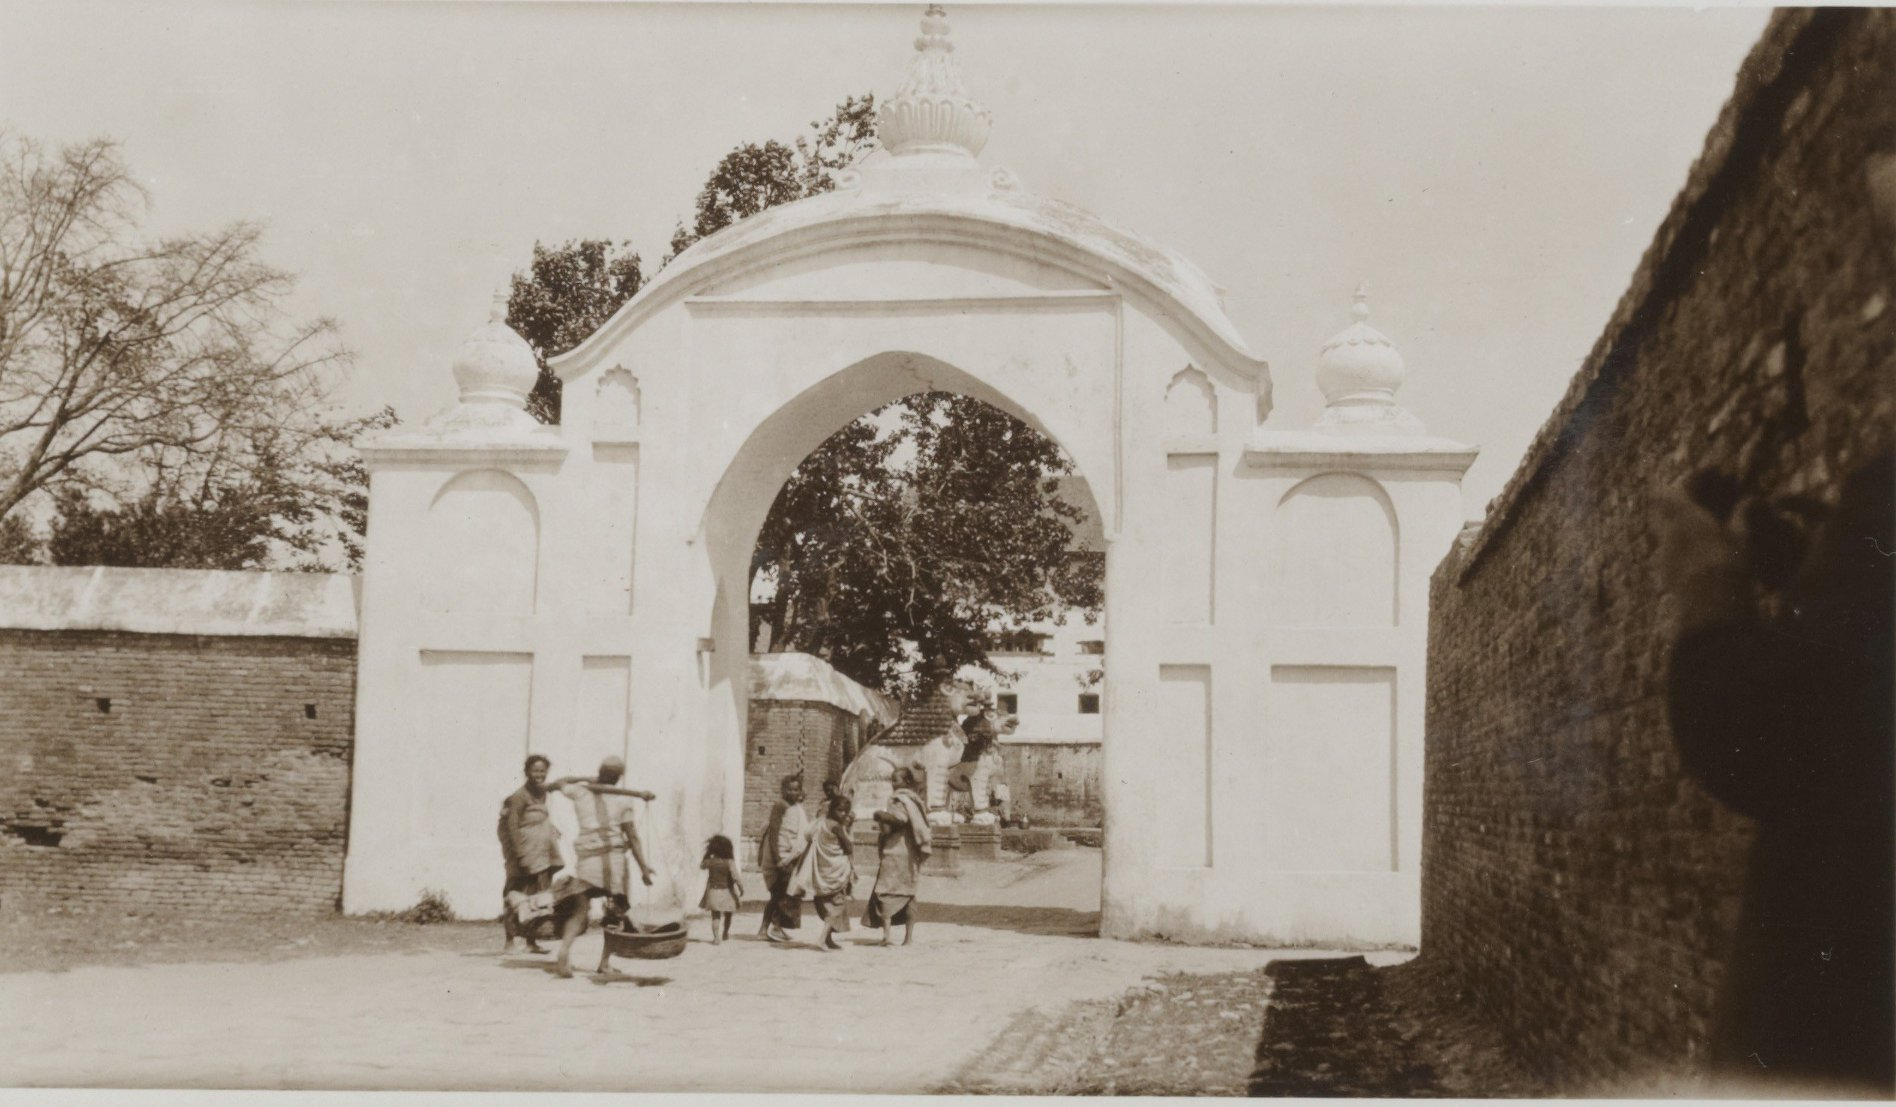 Durbar Square Entrance gate 1932-34 image